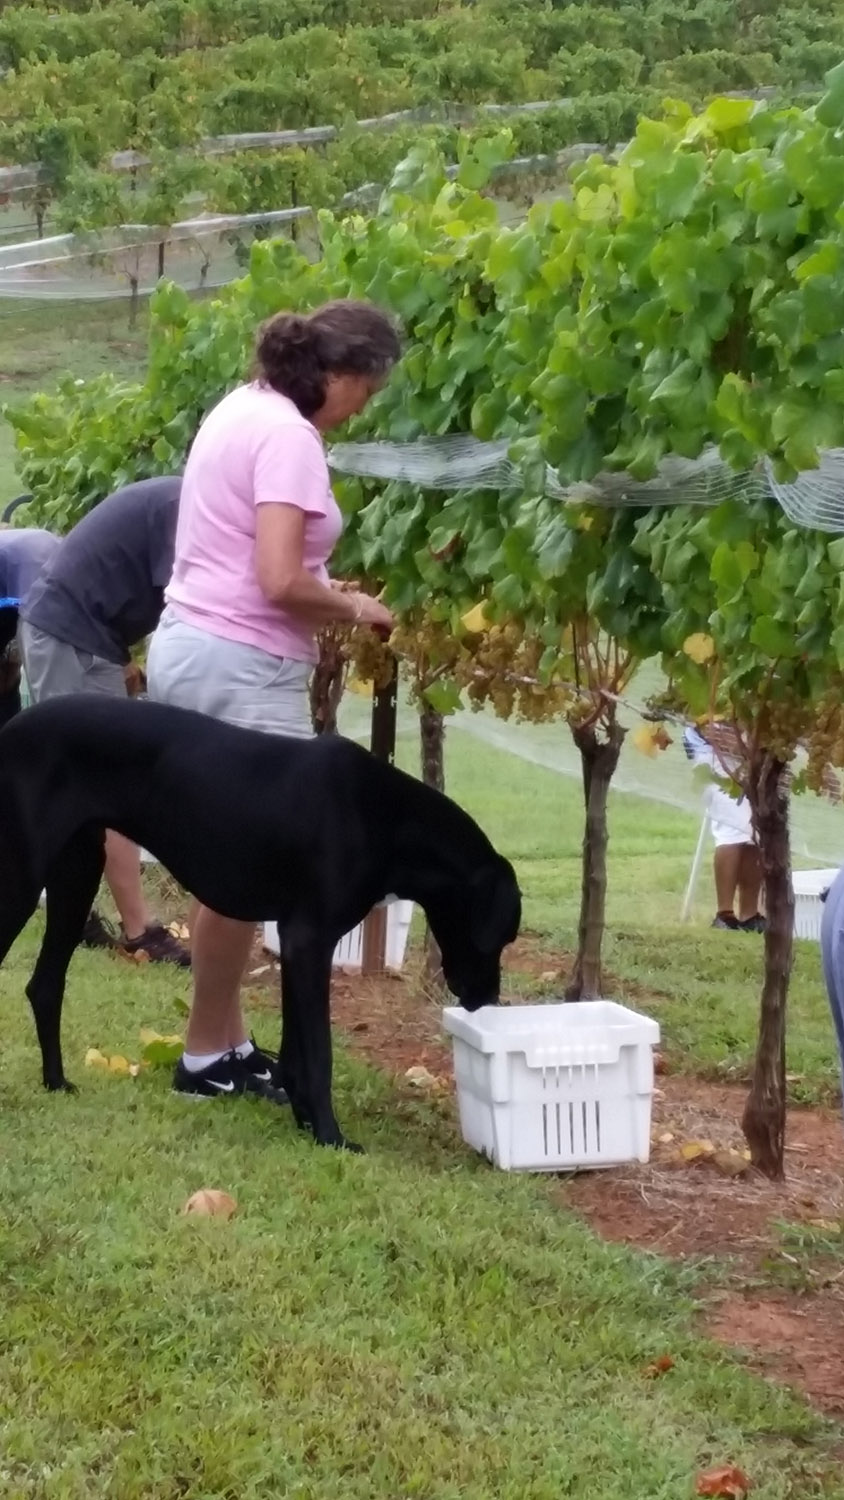 Harvesting grapes with help of dog.